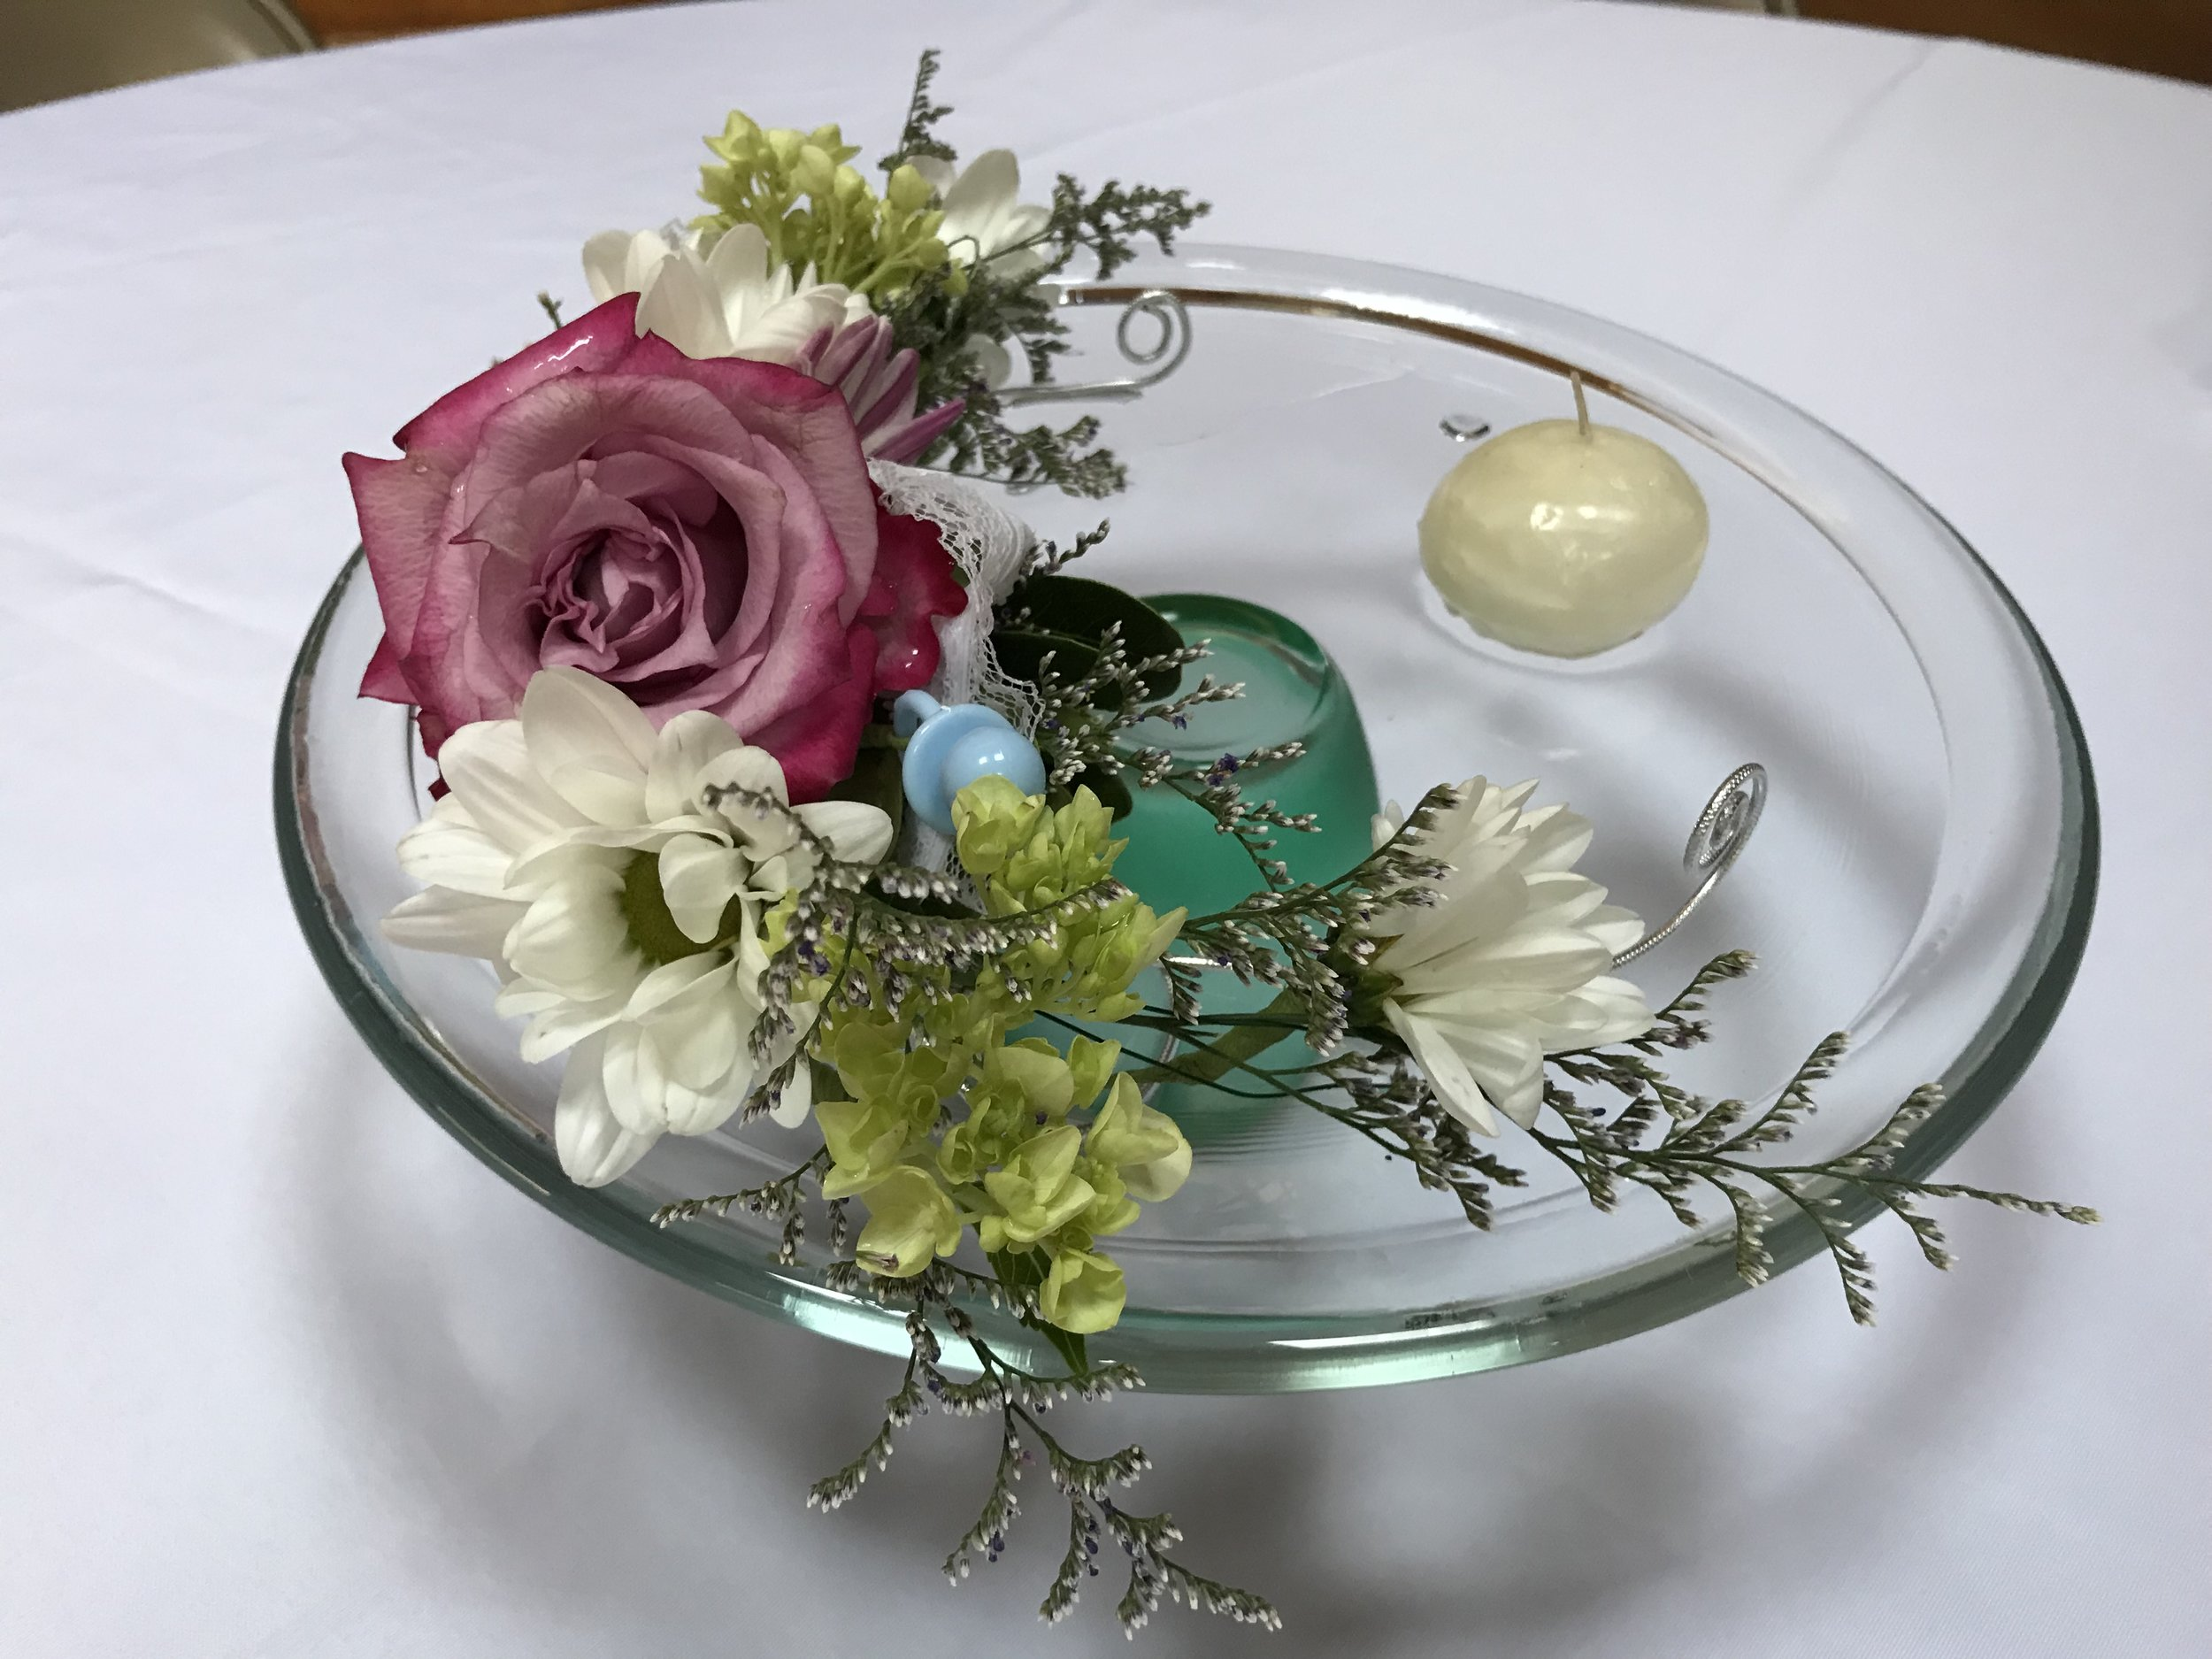 Centerpiece with rose garland in water - FLO 13